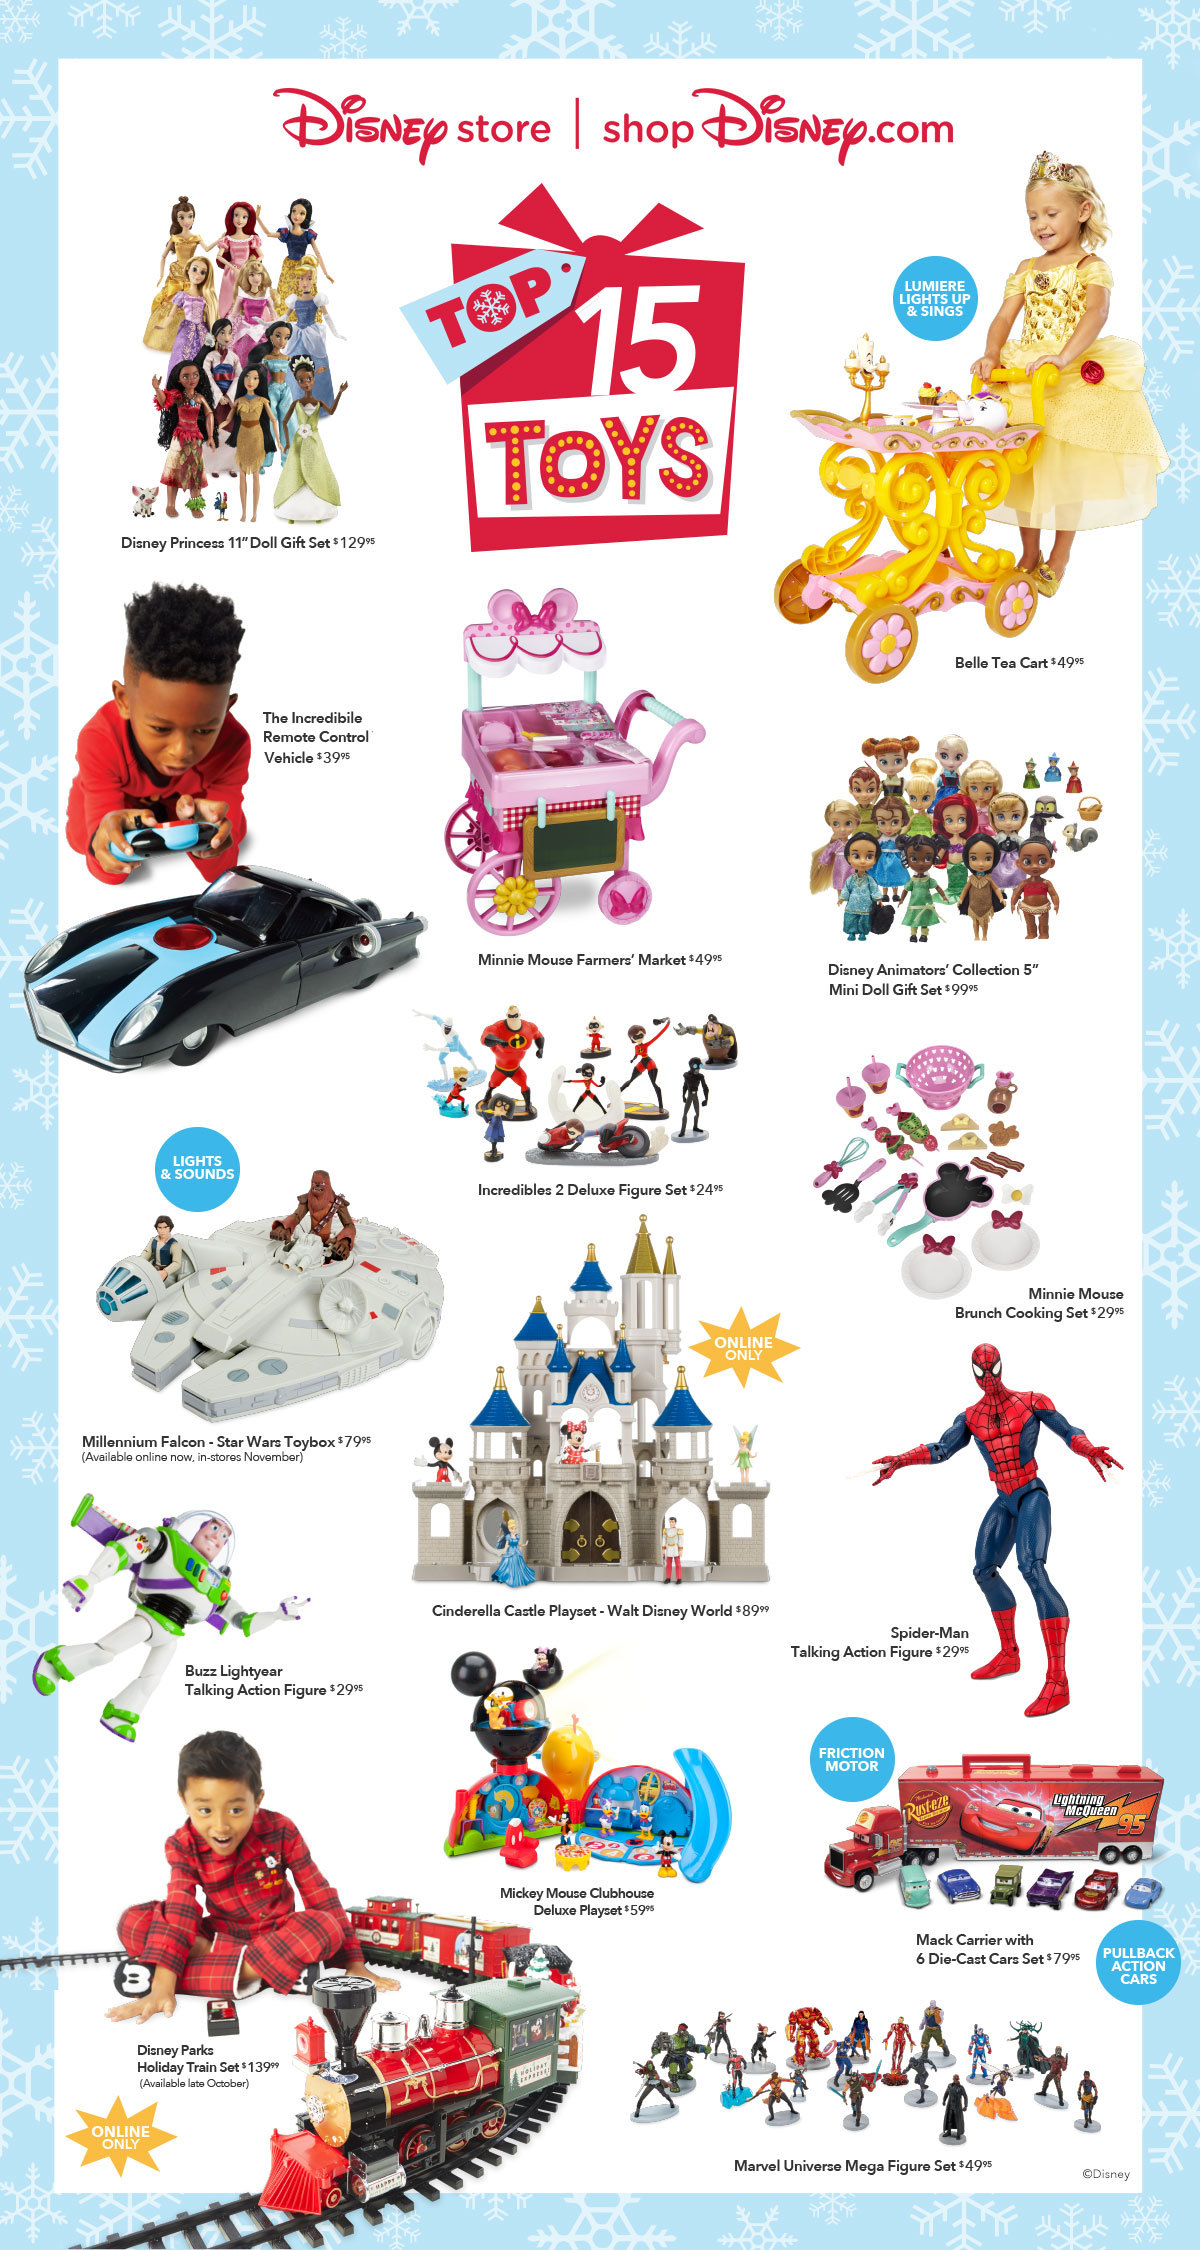 15and Up Toys For Everyone : Disney reveal the quot top holiday toys for